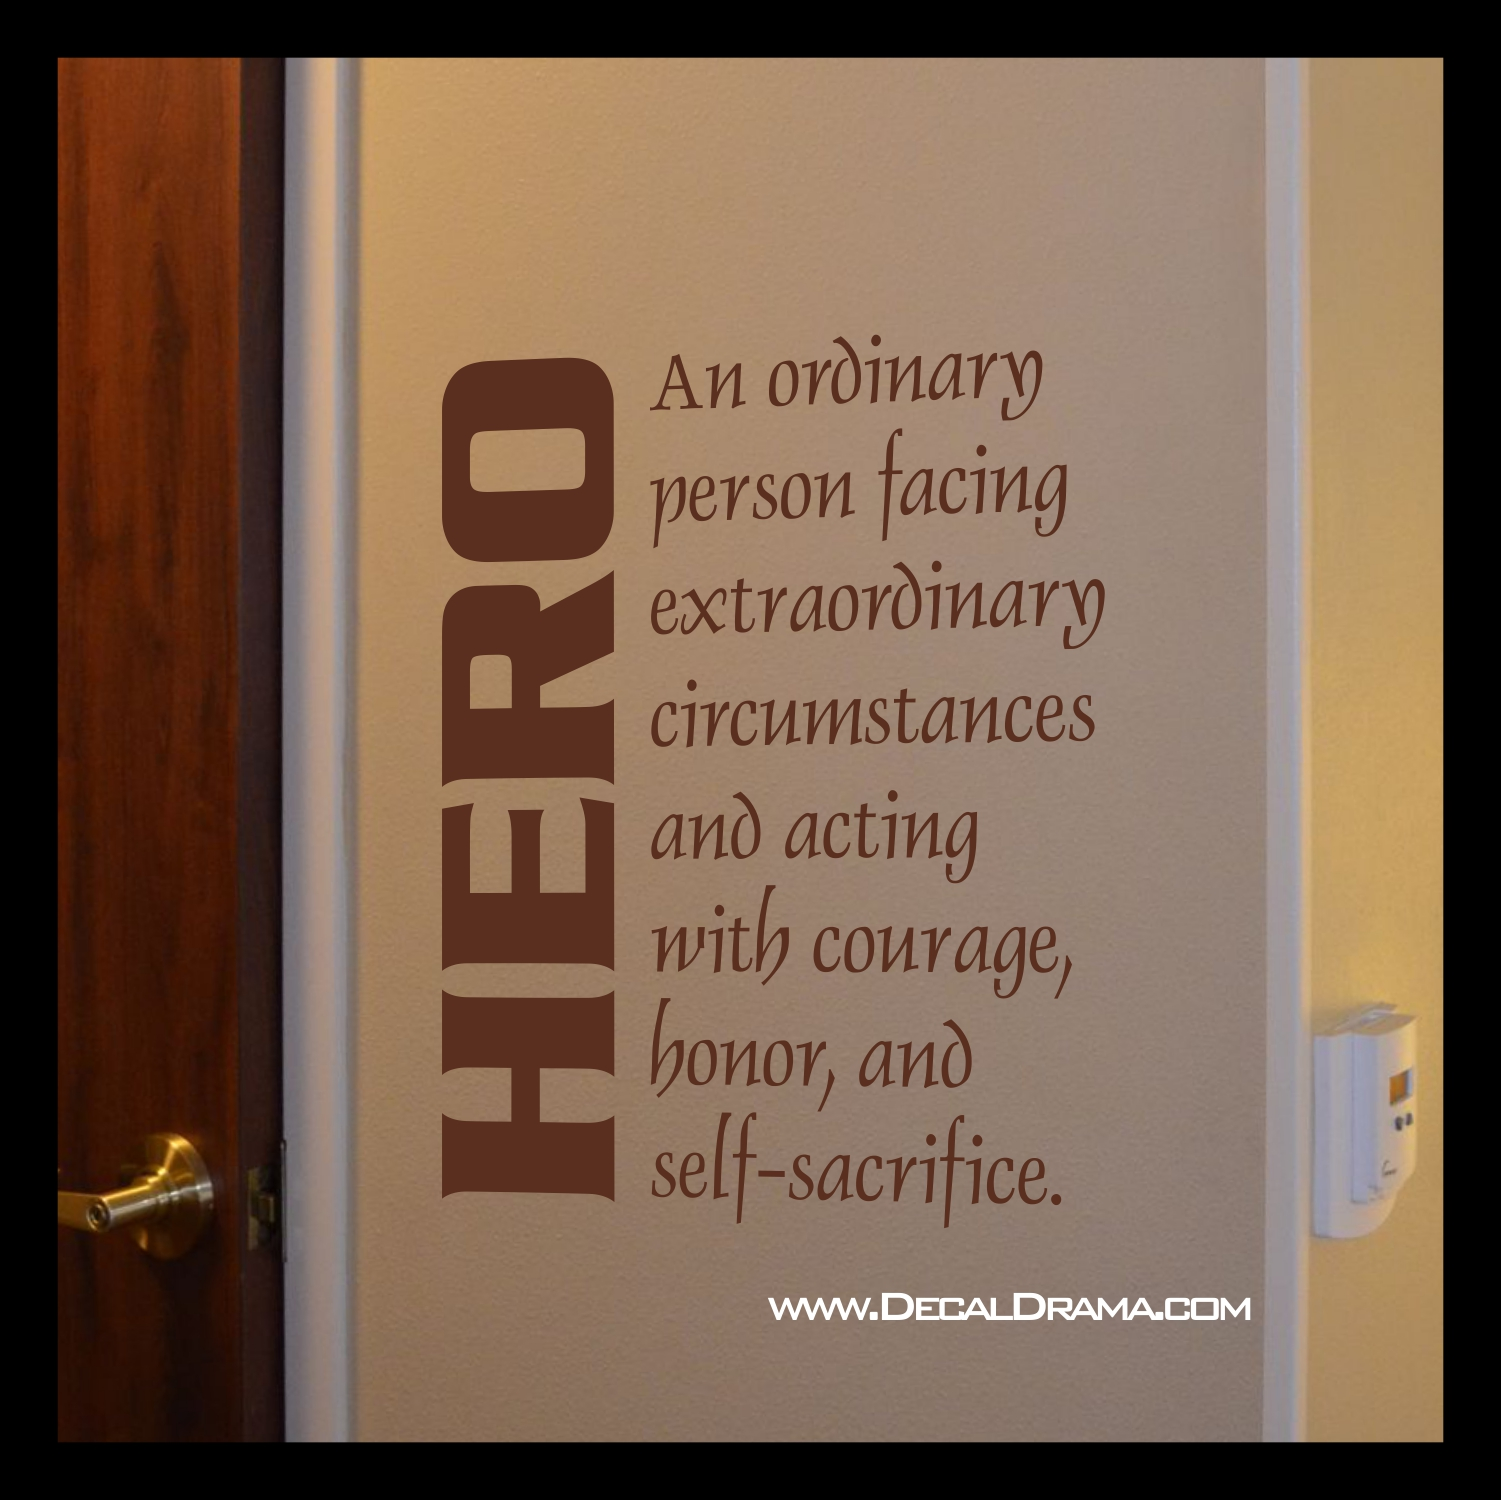 Decal Drama 183 Hero Definition An Ordinary Person Facing